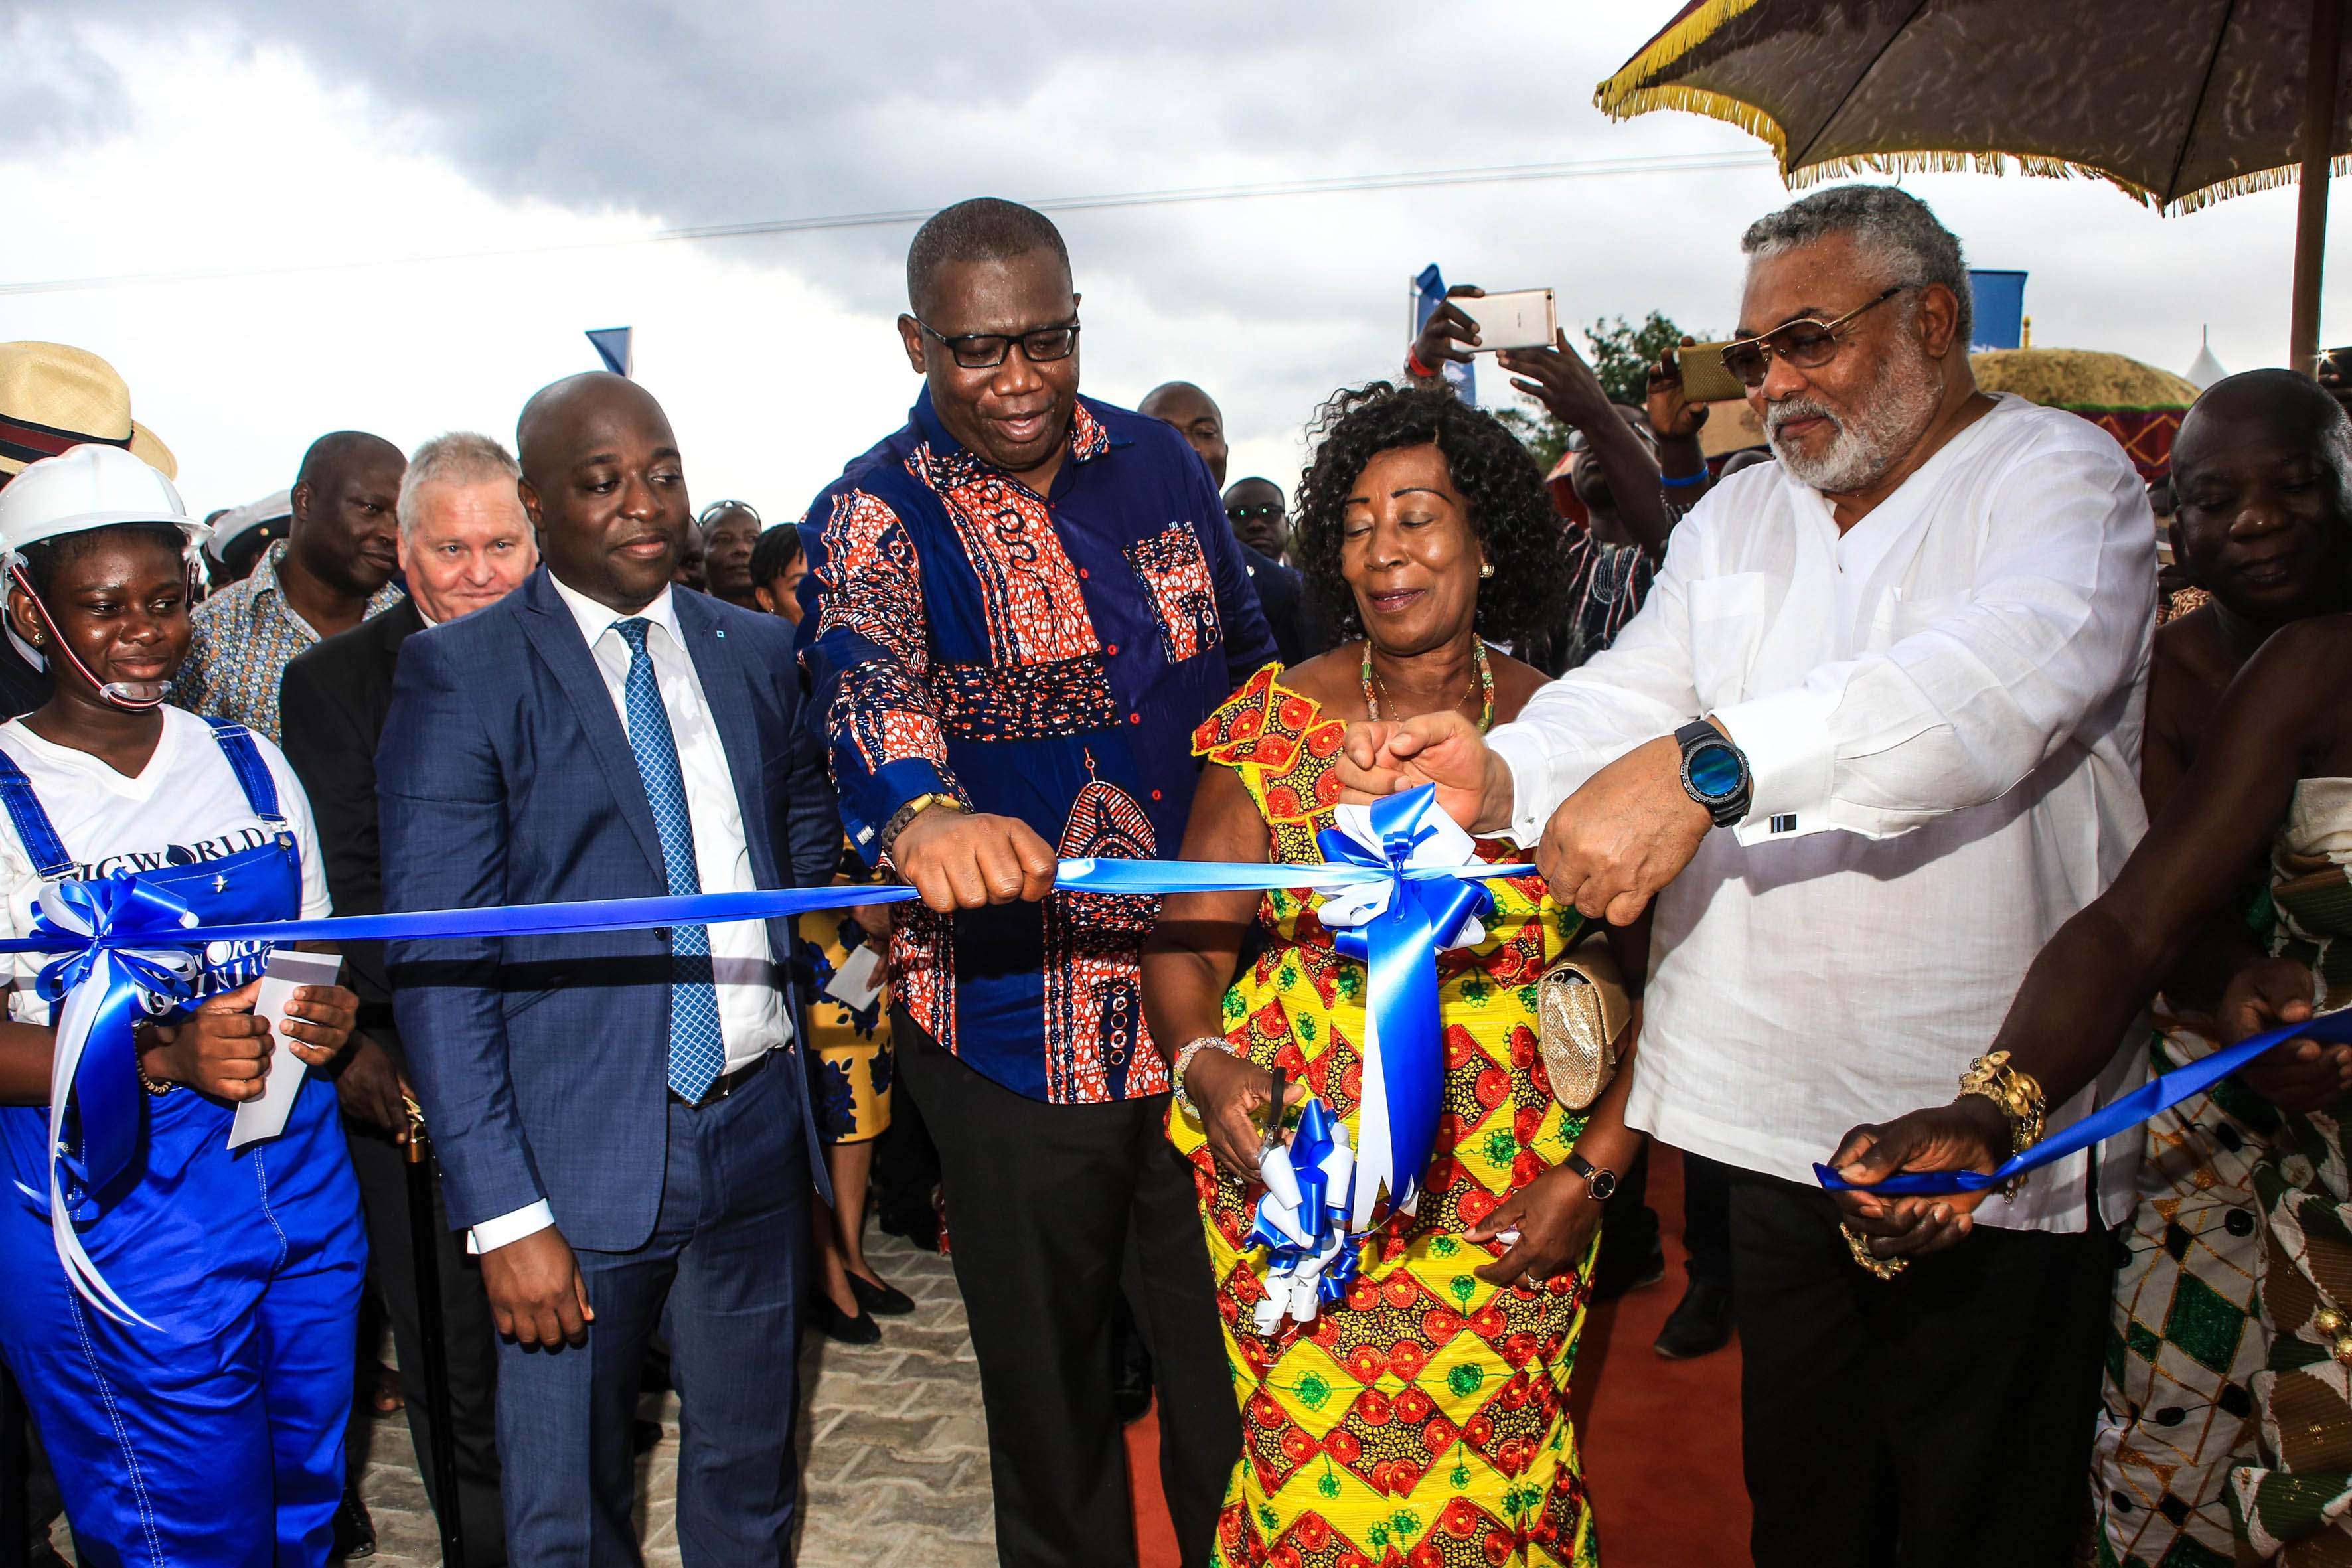 The ribbon is cut at the opening of the new oil and gas training centre in Takoradi. (Image Source: Rigworld)